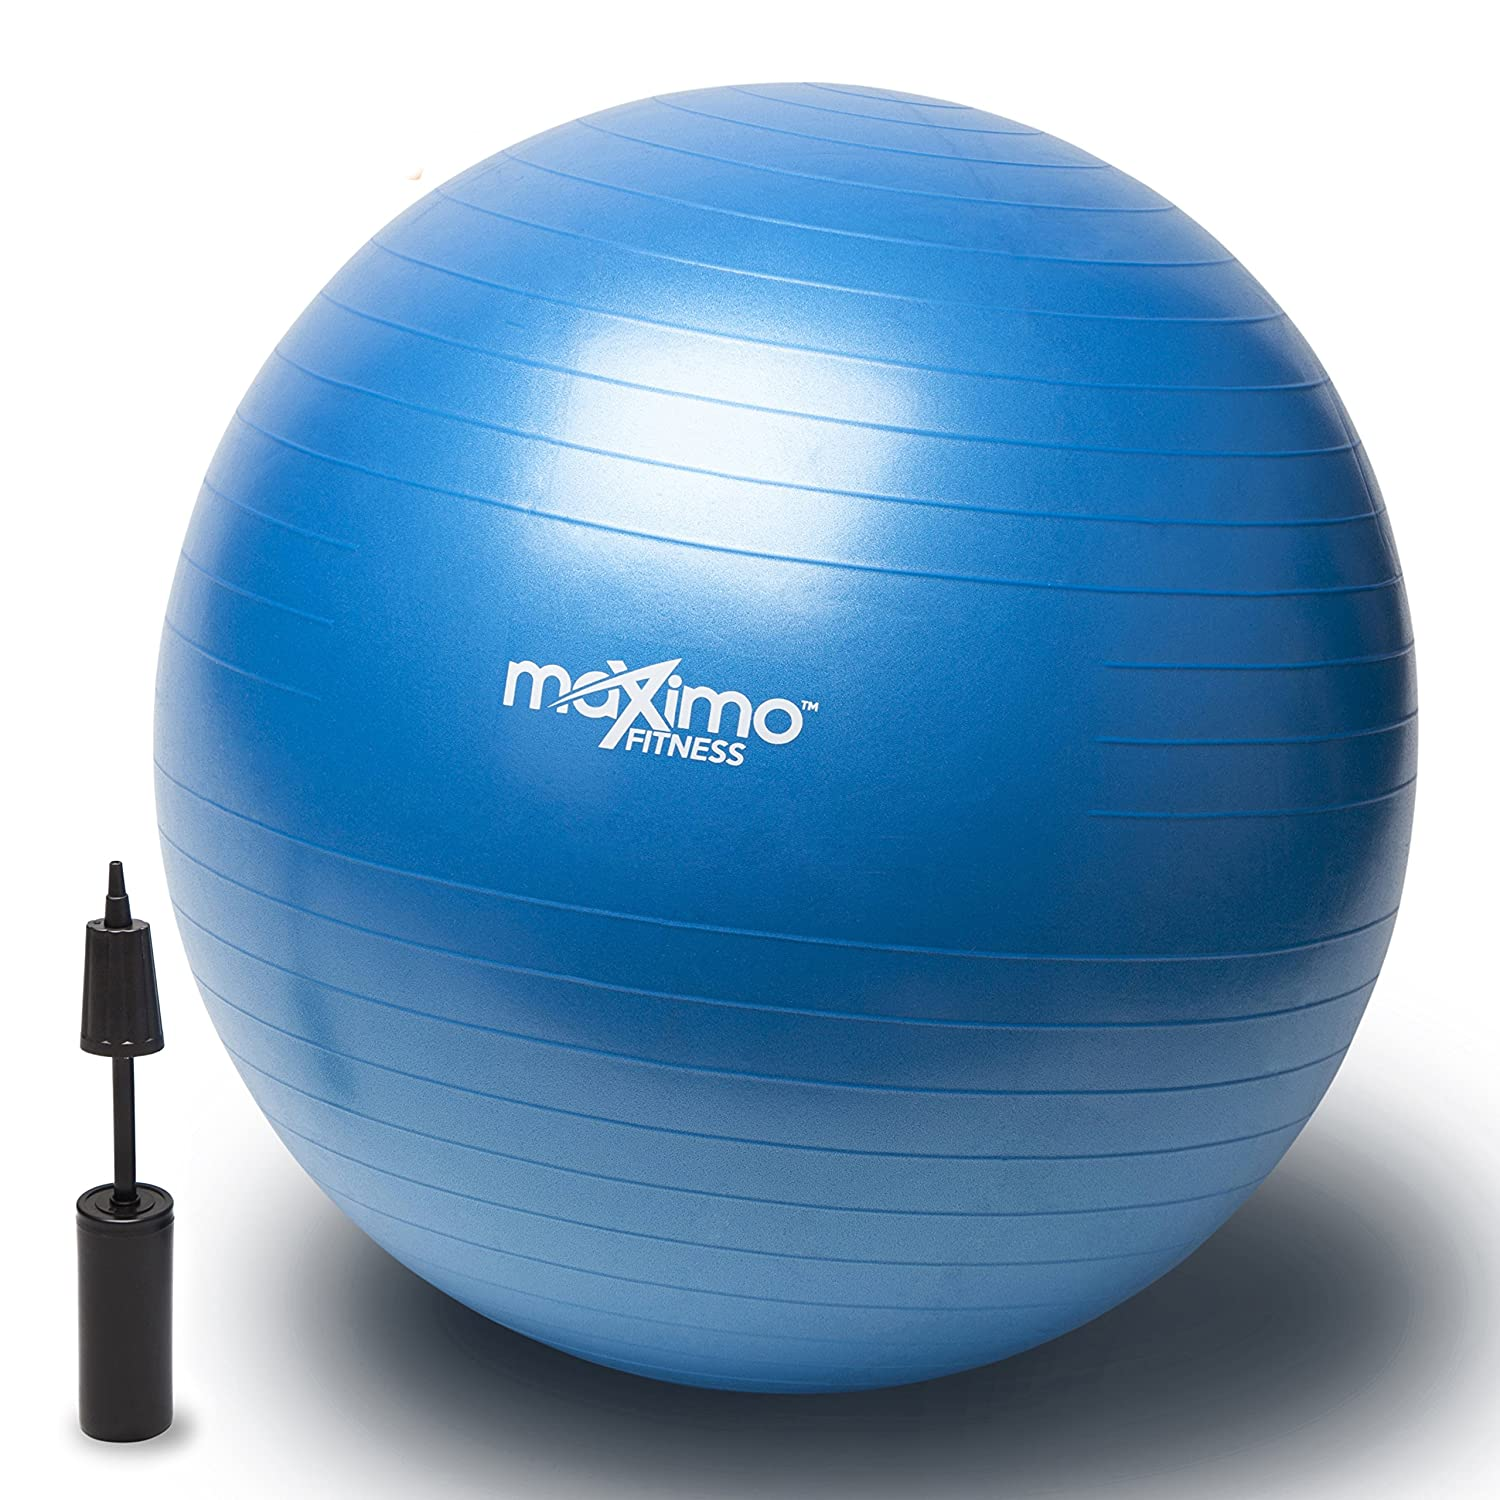 Exercise Ball 55cm + Hand Pump - Superior Quality - Perfect for Stability Training, Core Workout, Body Balance, Pilates, CrossFit - Anti-Burst - Non Slip PVC Material. Maximo Fitness